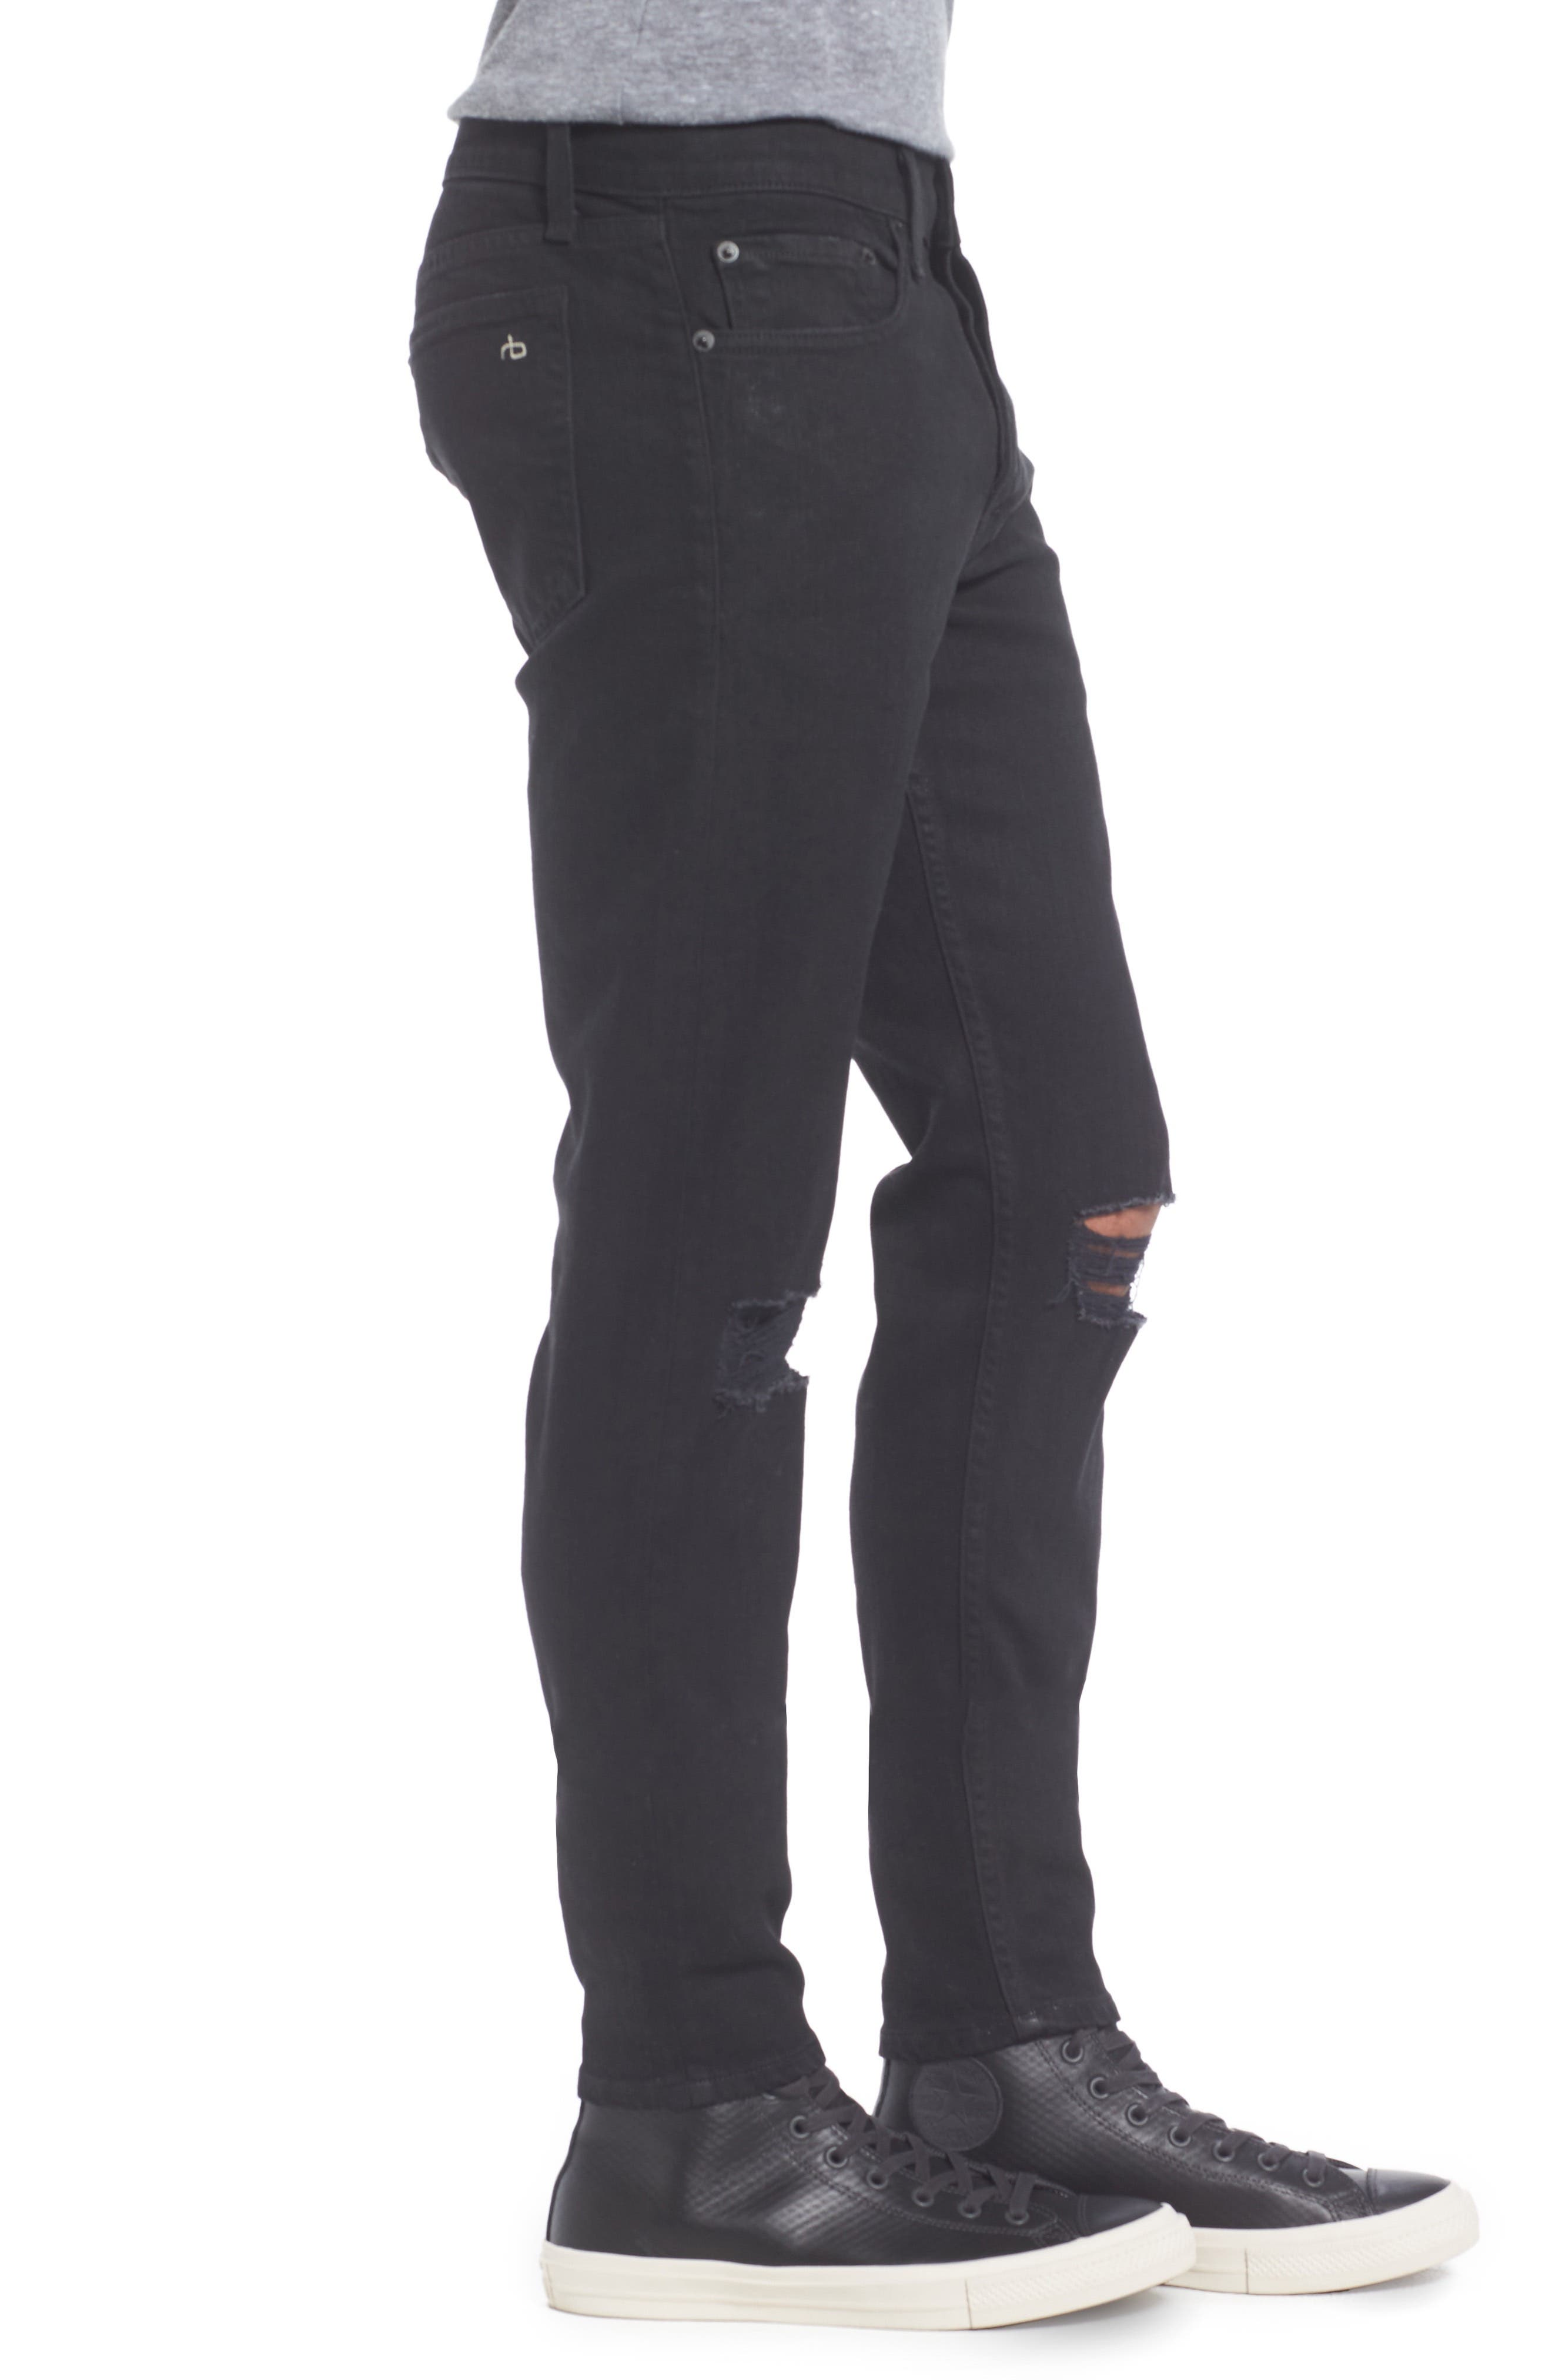 Fit 1 Skinny Fit Jeans,                             Alternate thumbnail 3, color,                             BLACK